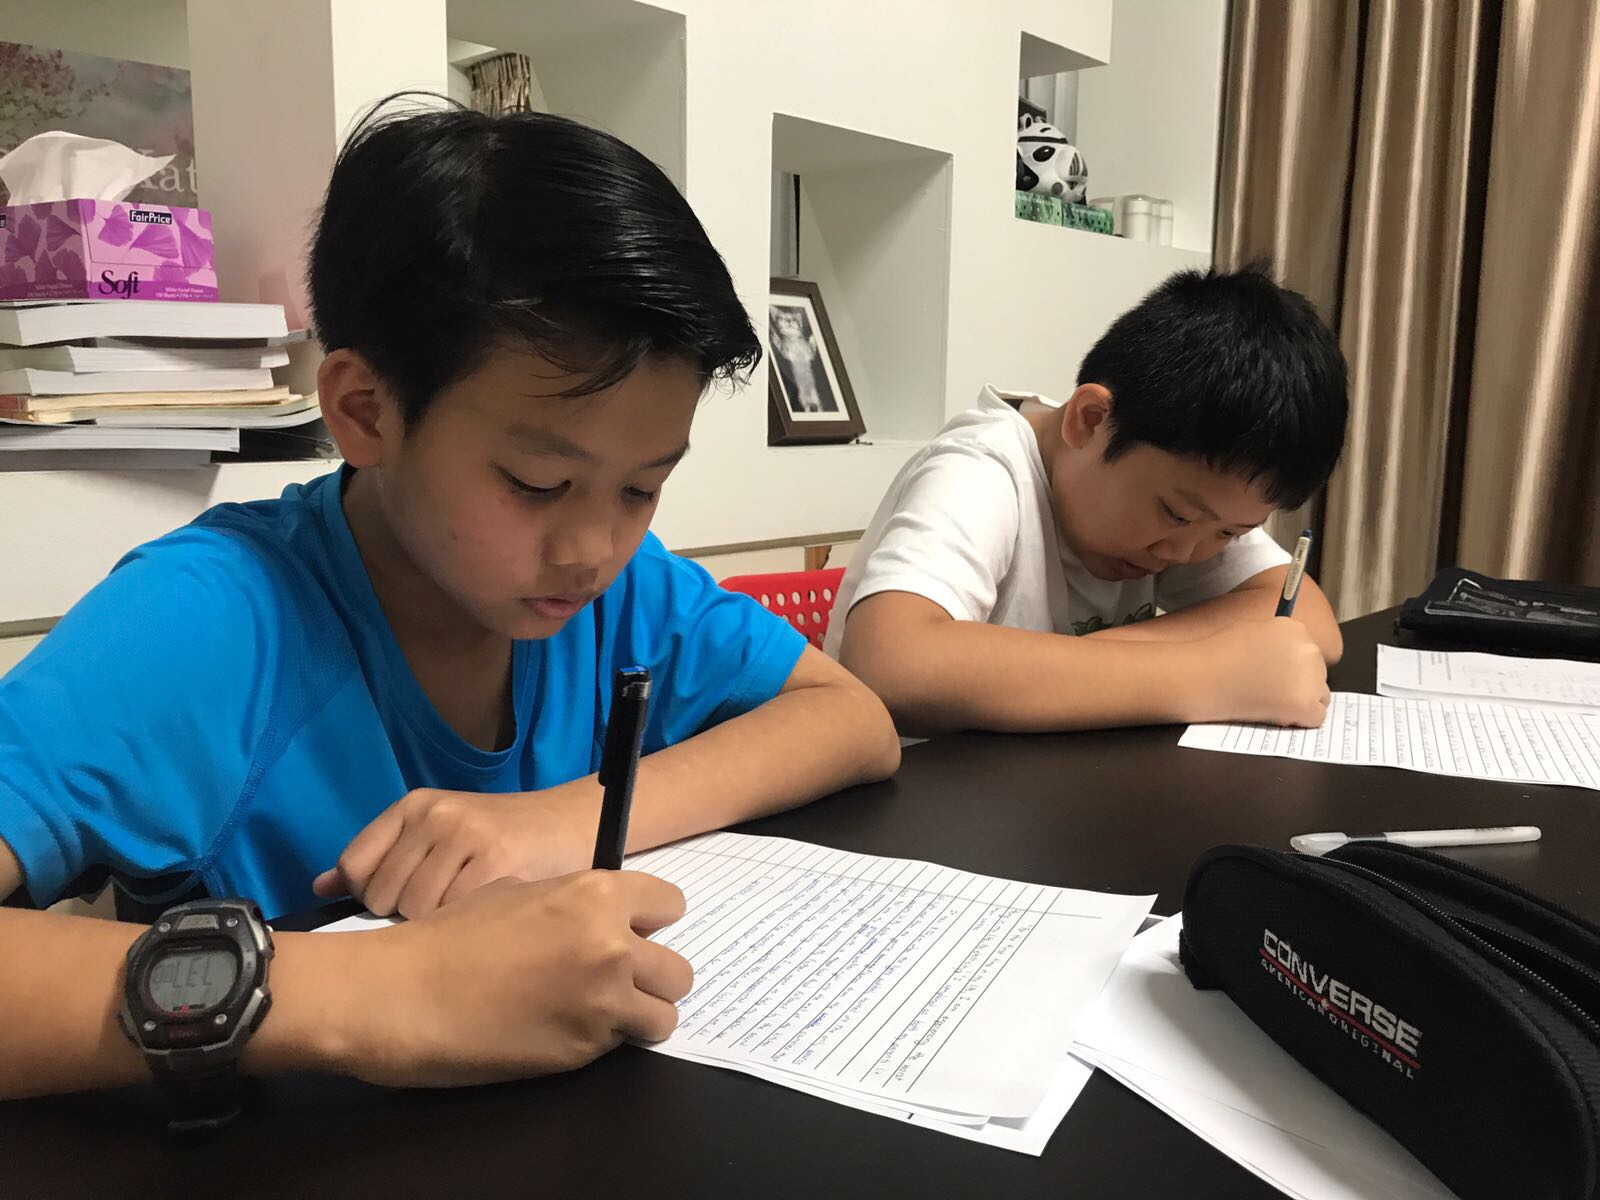 Punggol Tuition Centre Good Tutor for Small Group Pri Sec English Maths Science Qualified Tutors  Primary Secondary P1 p2 p3 p4 p5 p6 PSLE GCE O level Waterway Point English tutor